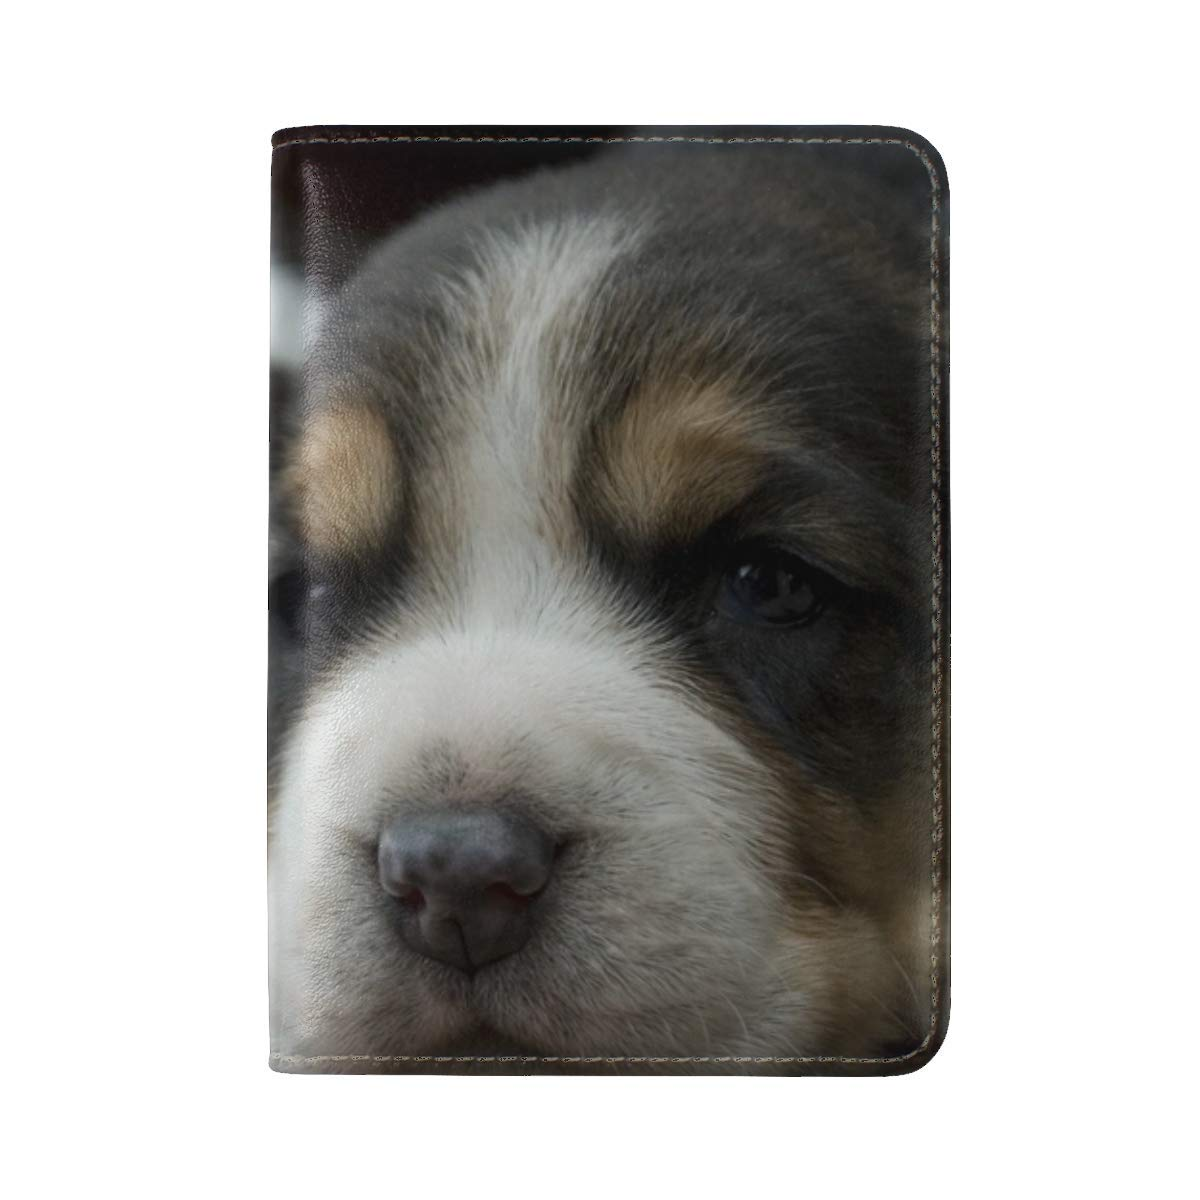 Puppies Dogs Face Spotted Leather Passport Holder Cover Case Travel One Pocket